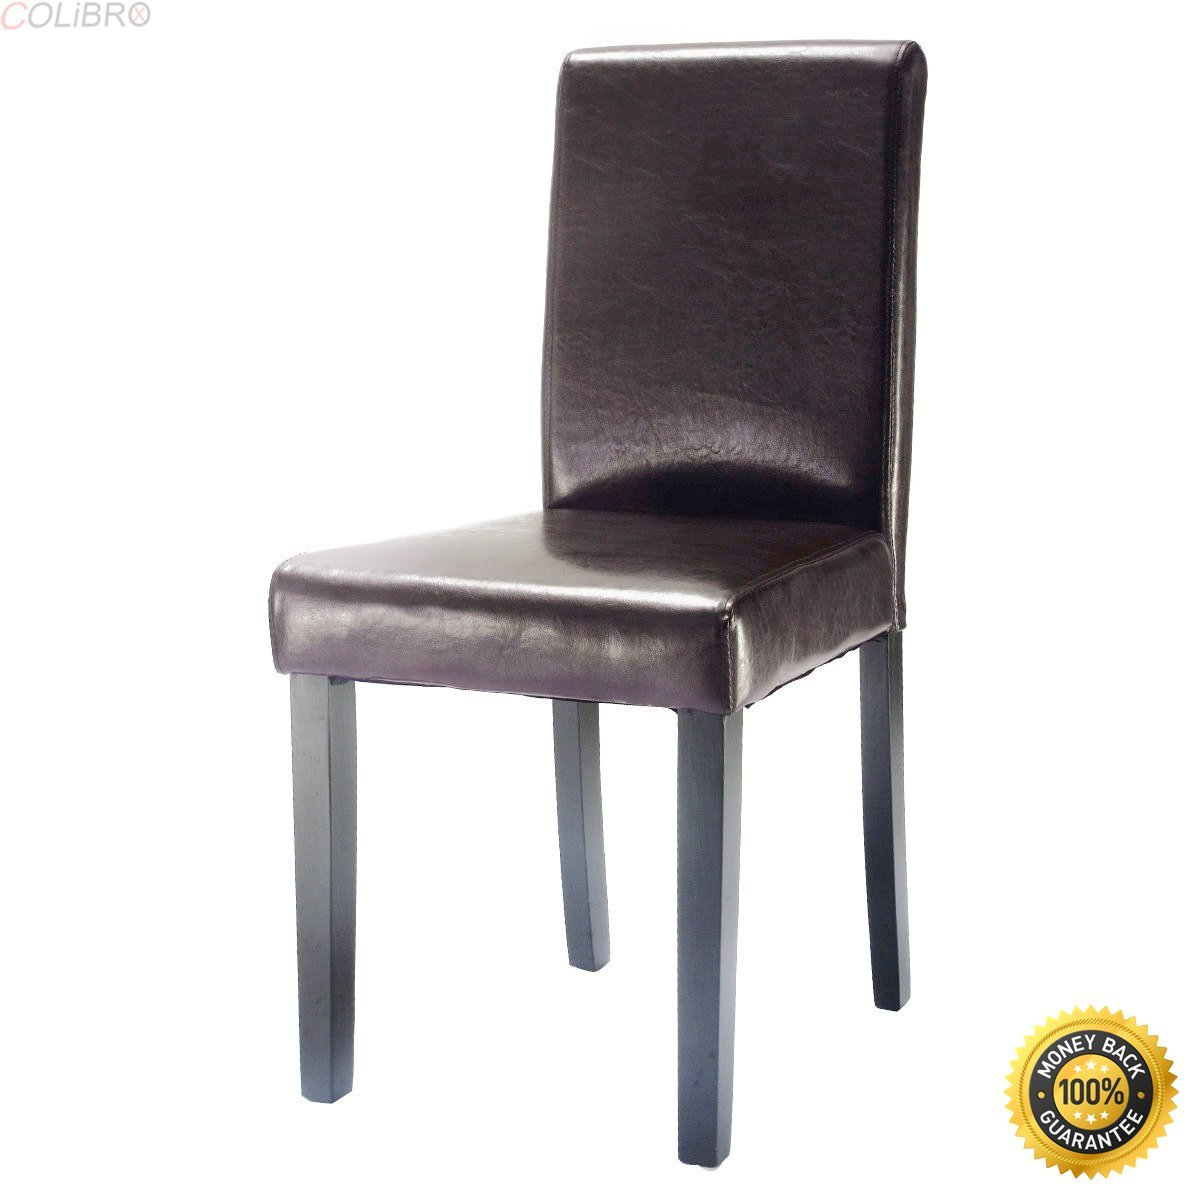 Colibrox Set Of 4 Elegant Design Leather Contemporary Dining Chairs Home Room